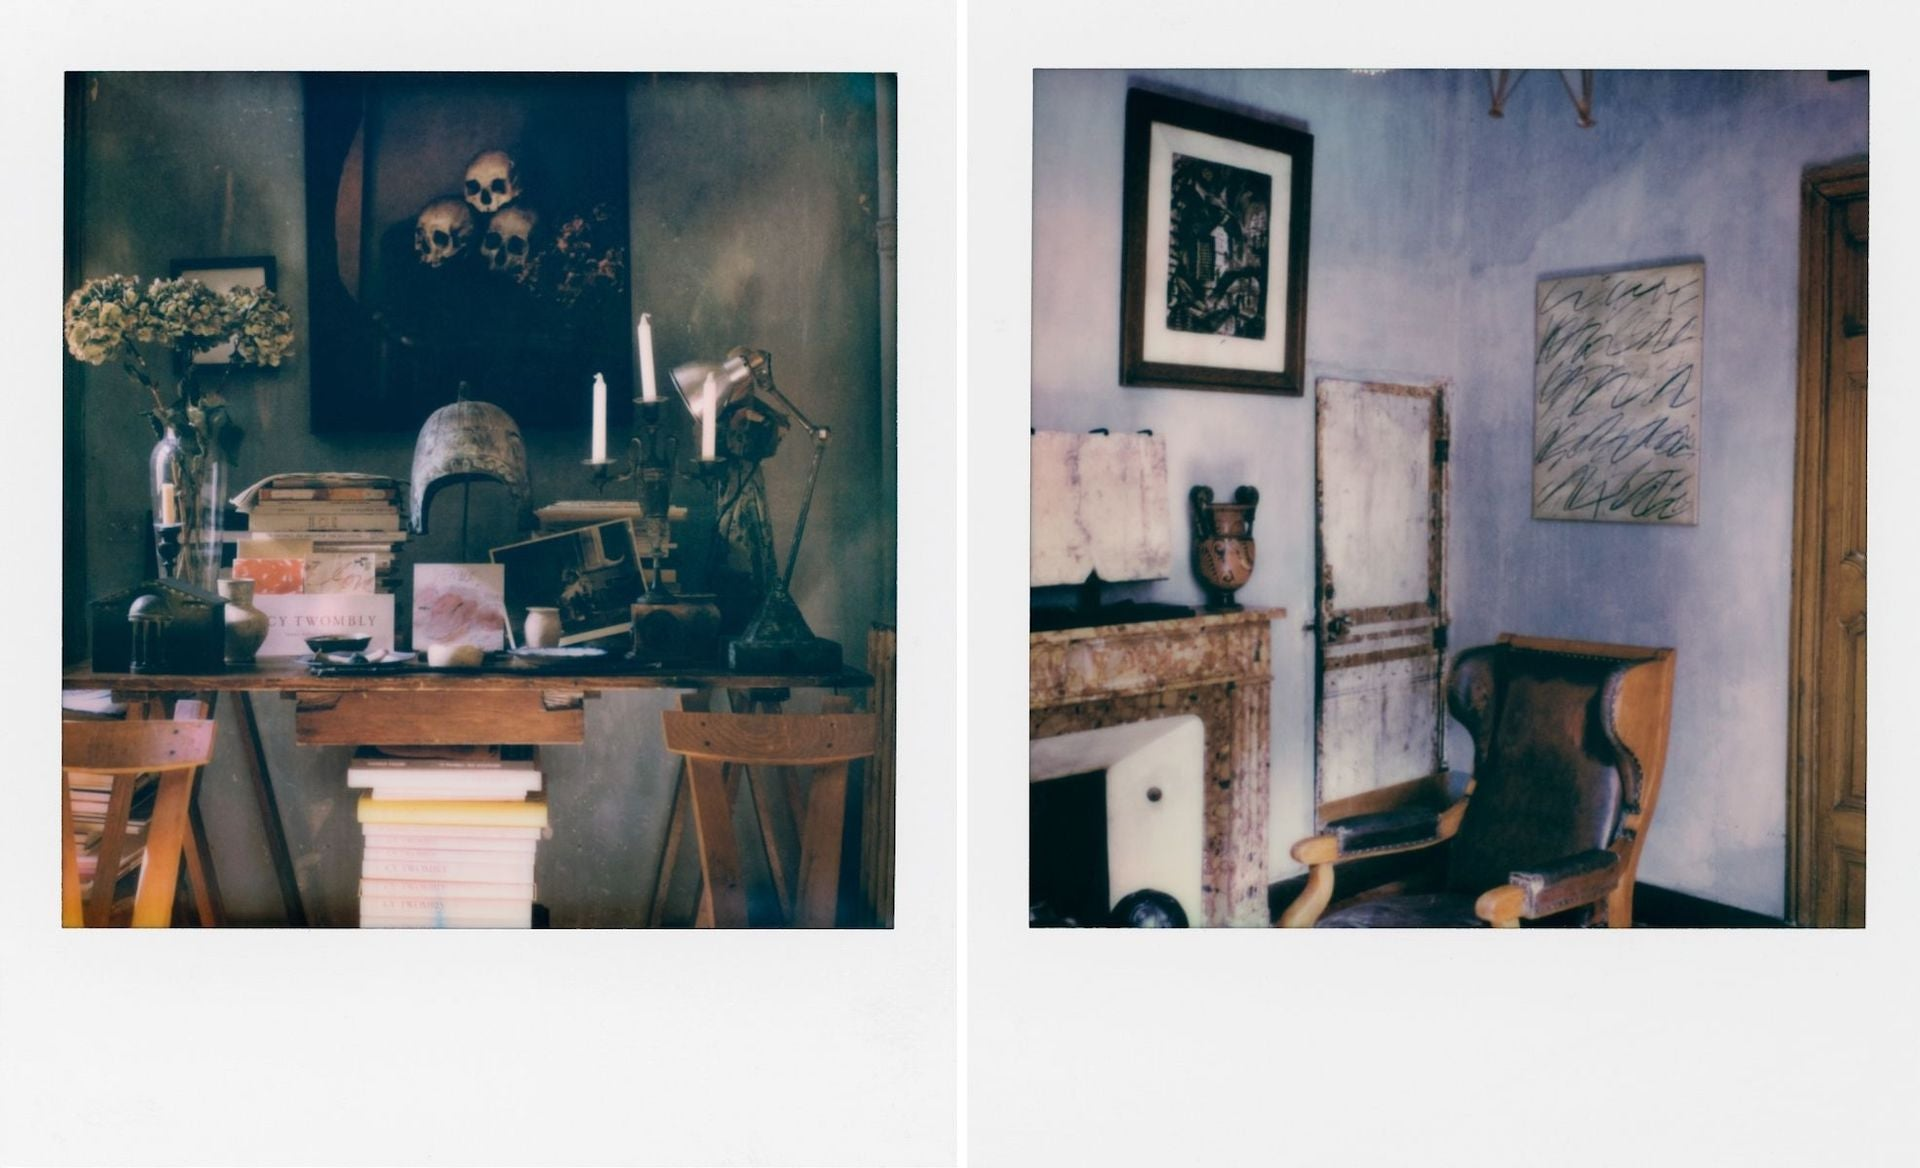 Photographs from 56 days in Arles by François Halard. At right, Cy Twombly's Roman Notes hang on the wall of Halard's home in Arles. © 2021 François Halard and Libraryman